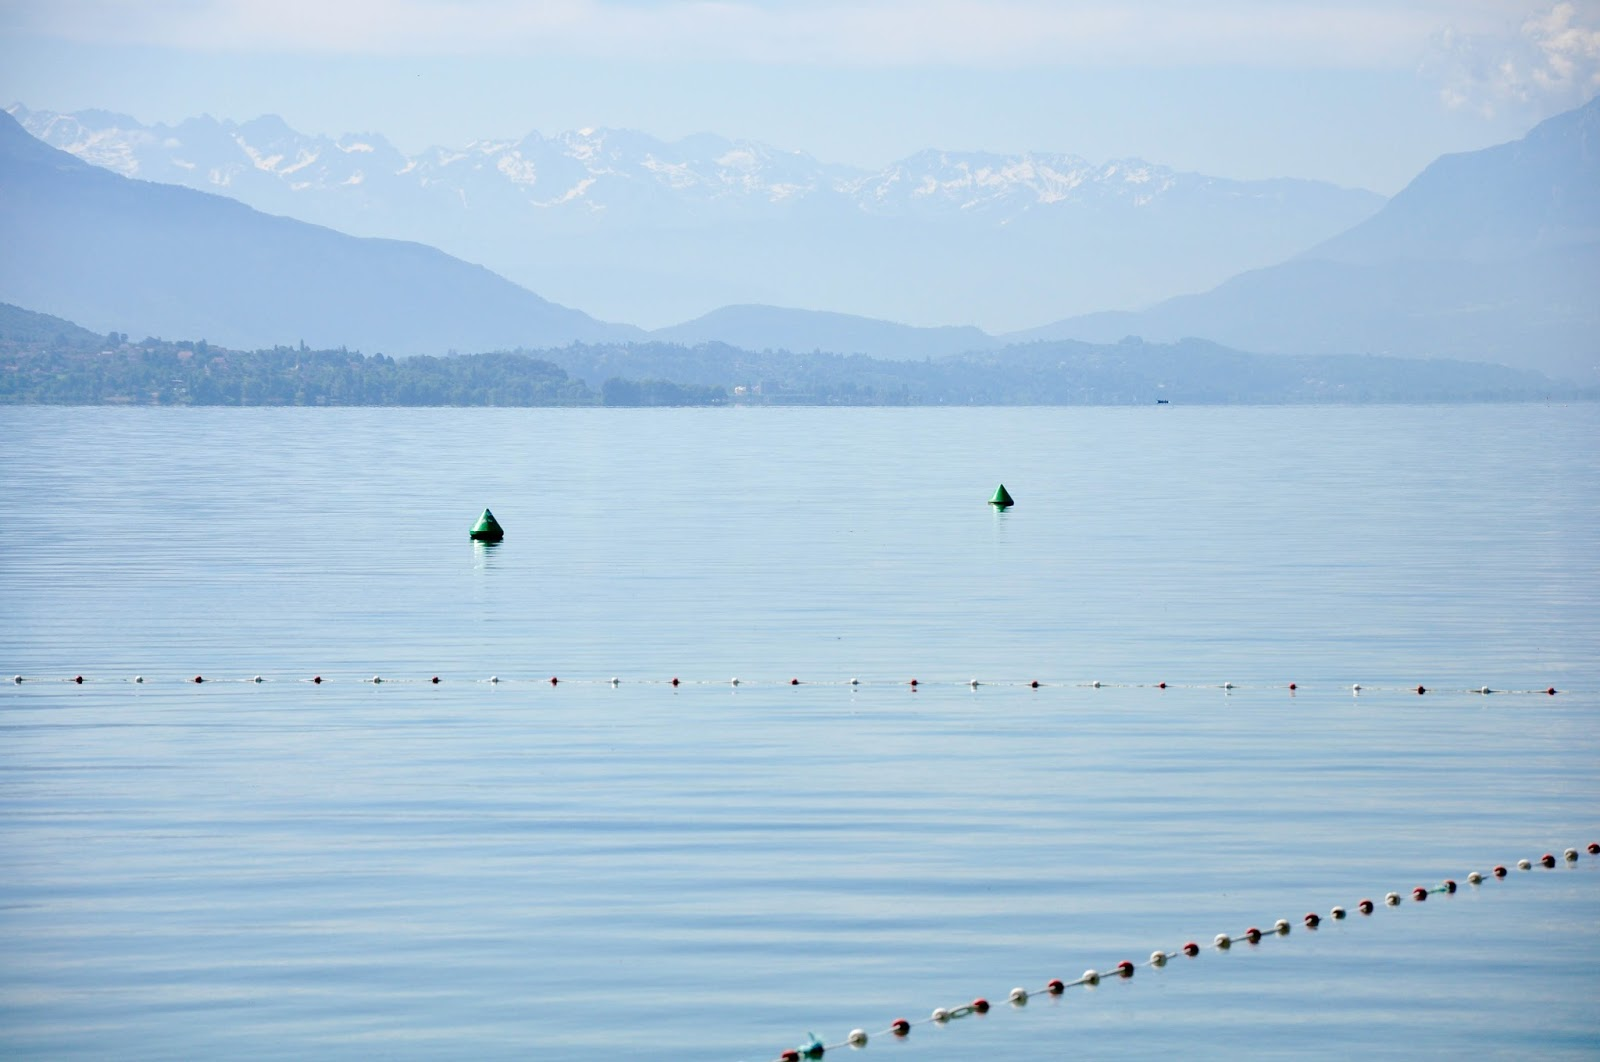 Early in the morning, Lake Bourget, France's largest lake